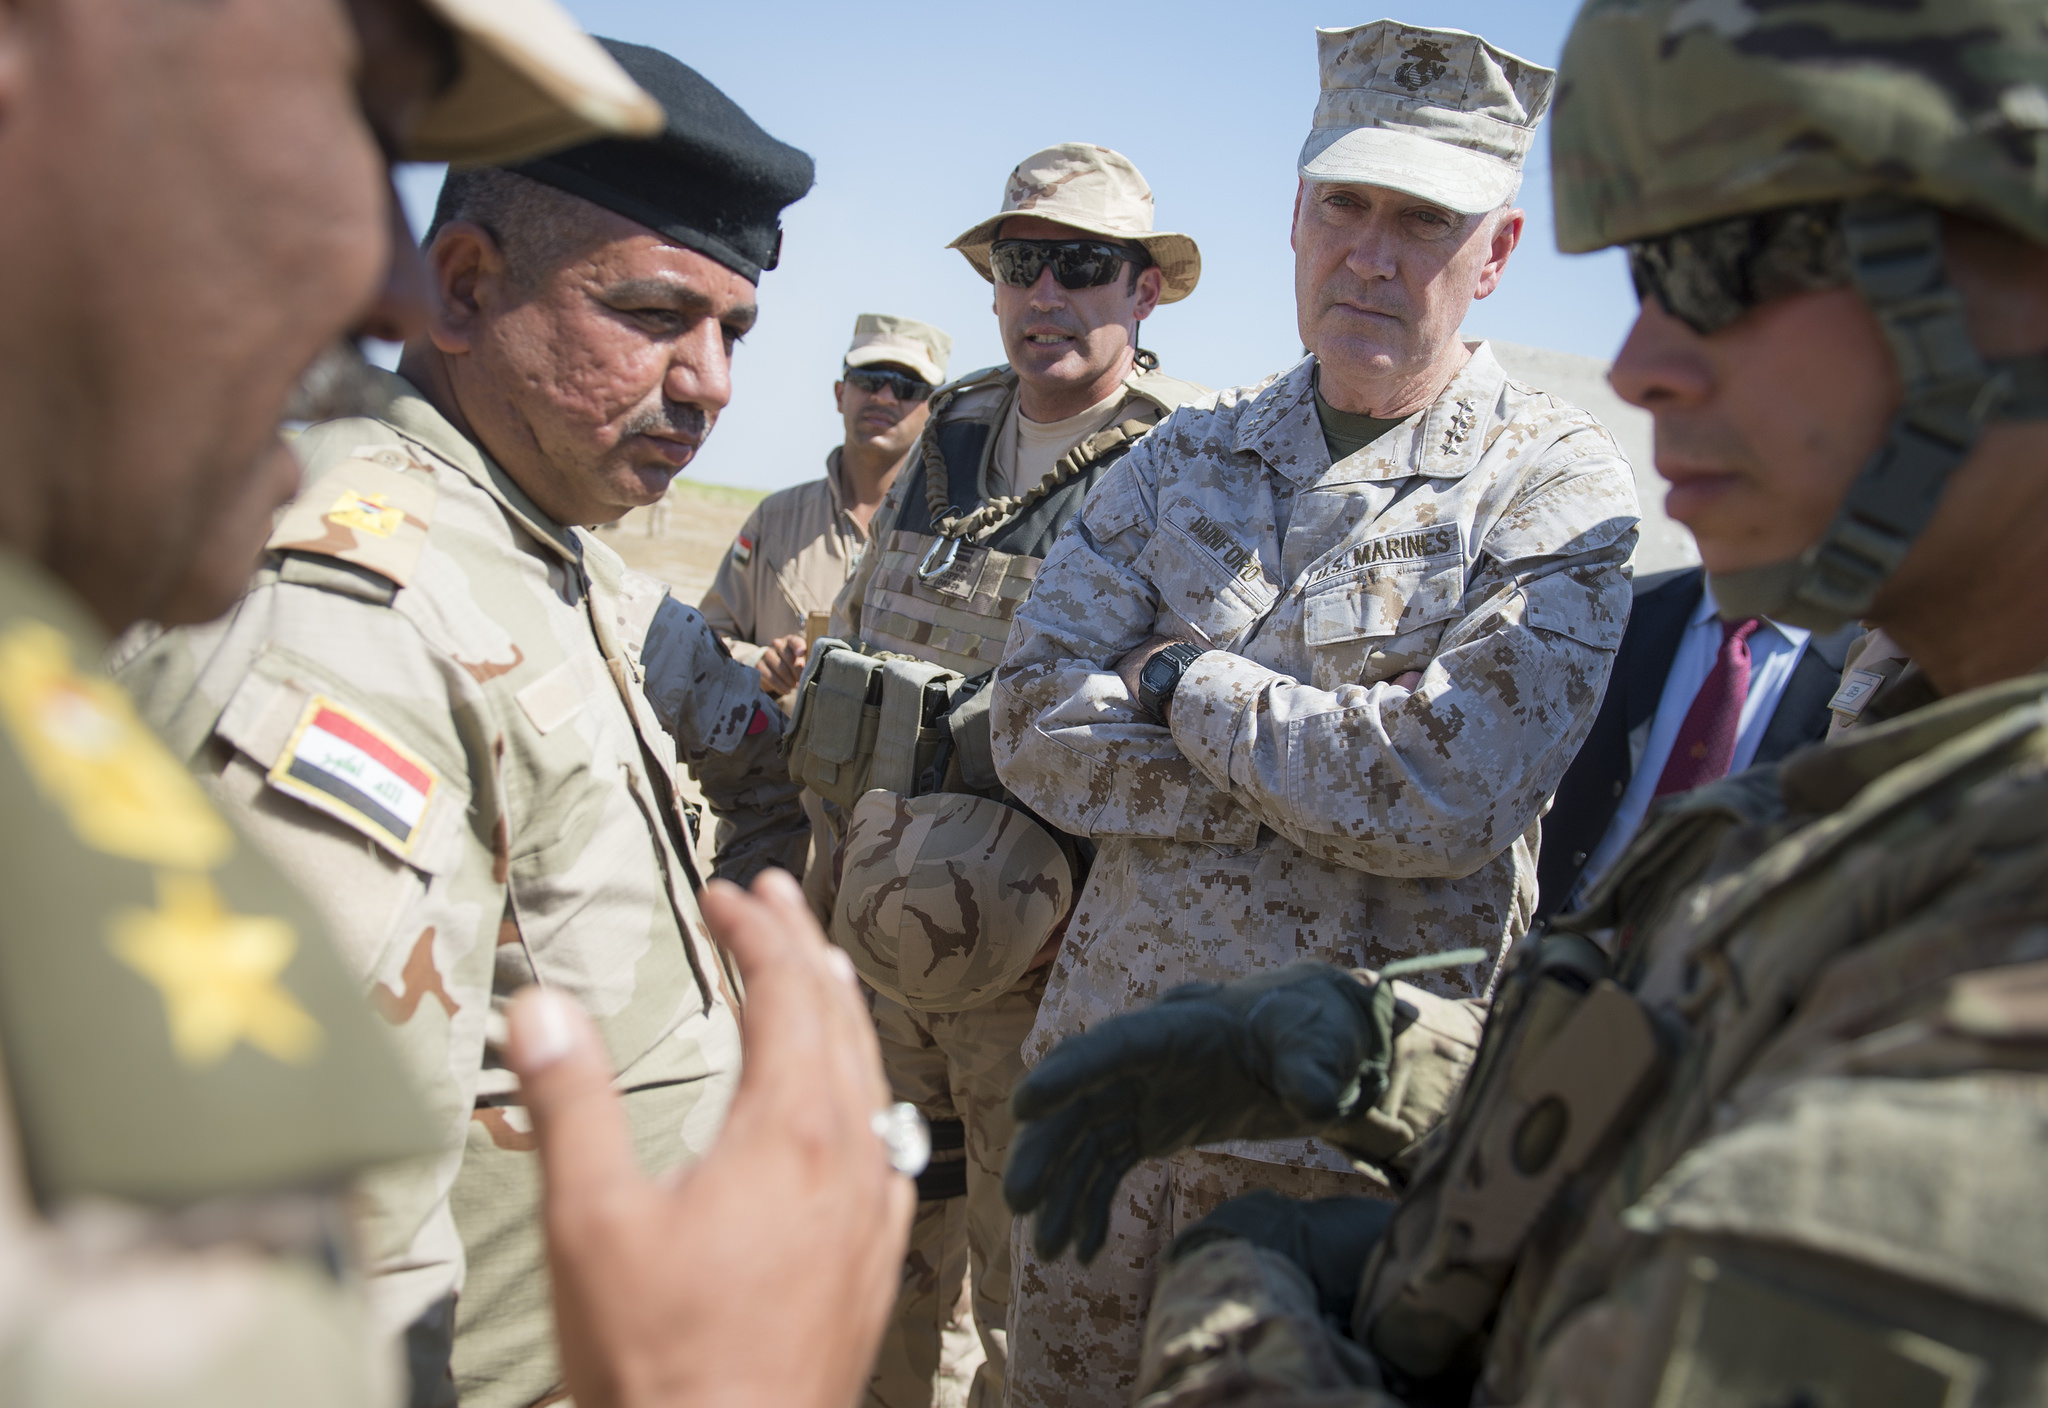 Marine Corps Gen. Joe Dunford, chairman of the Joint Chiefs of Staff, meets with Iraqi leaders and coalition trainers in the Combined Joint Task Force Operation Inherent Resolve at Besmaya Range Complex April 21, 2016. (DoD photo by Navy Petty Officer 2nd Class Dominique A. Pineiro)